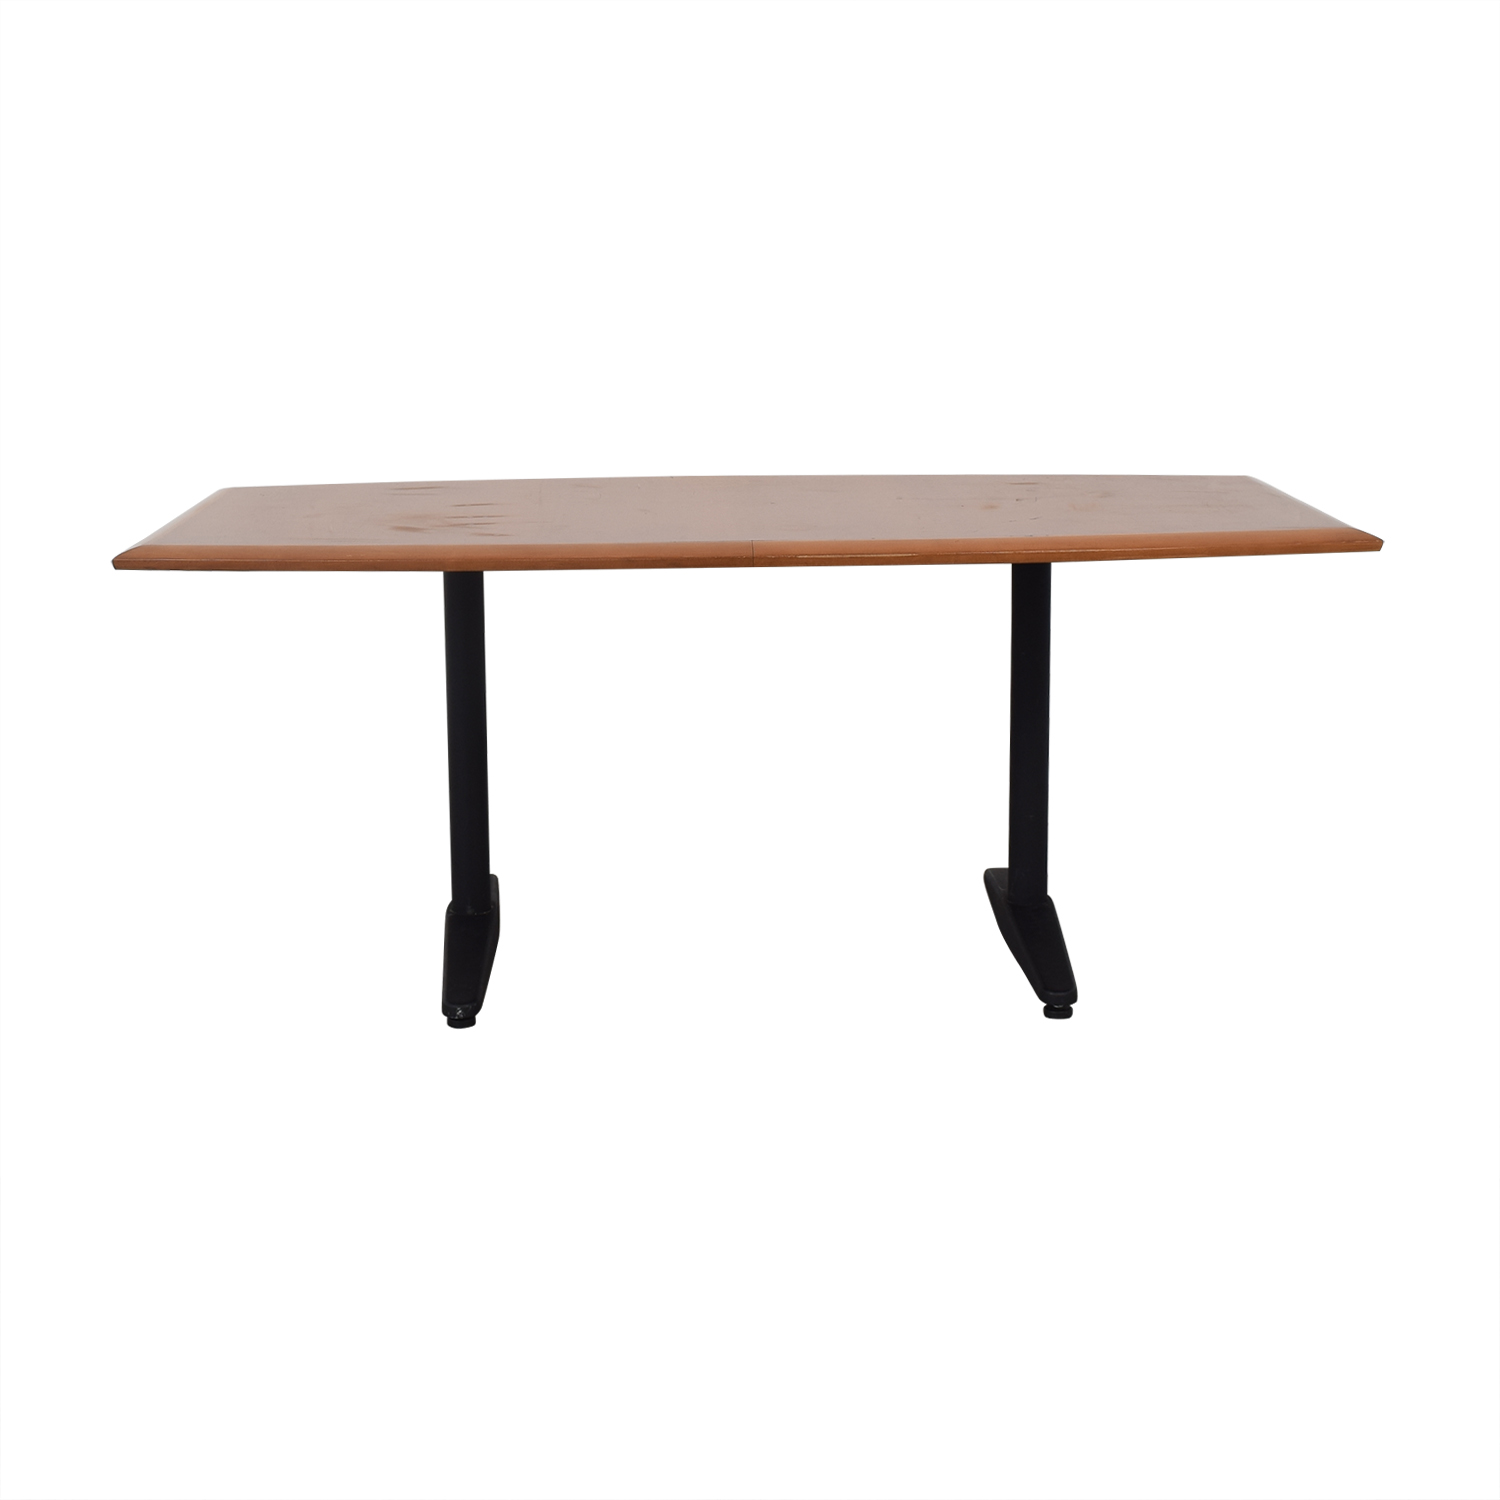 Gunlocke Company Gunlocke Cherry Wood Table second hand